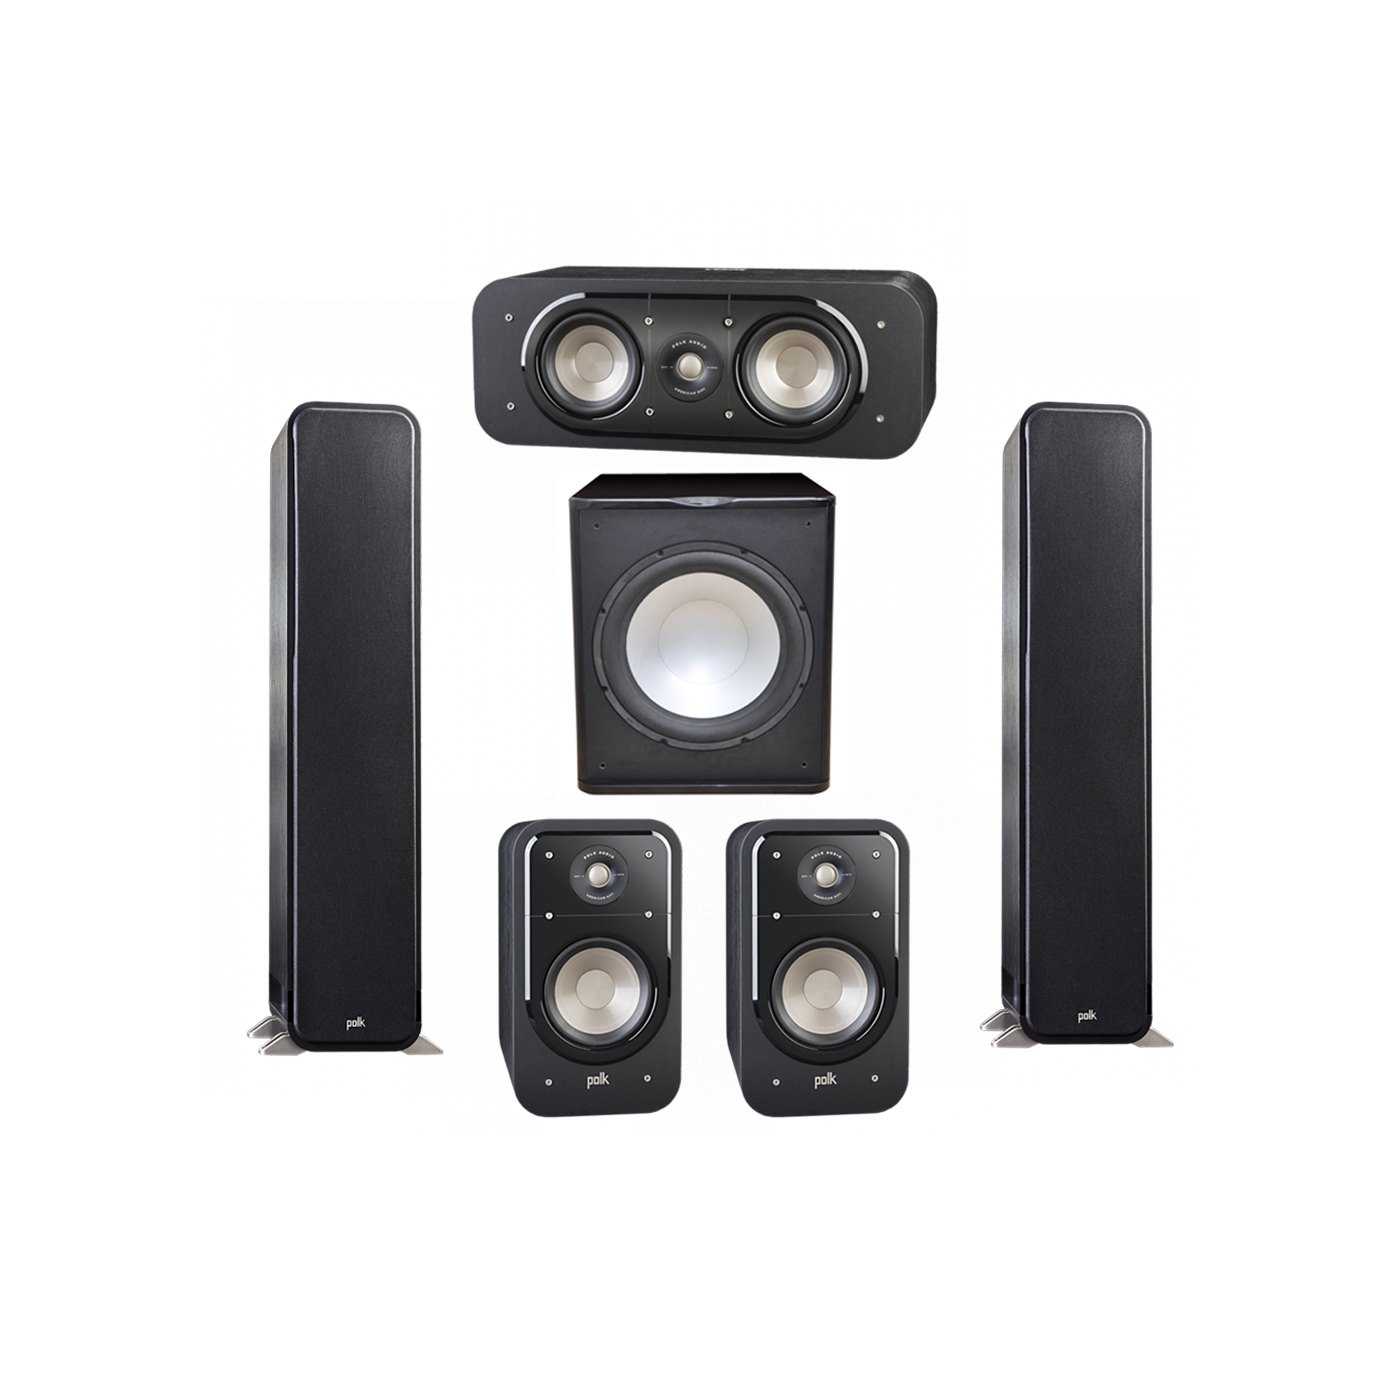 Polk Audio Signature 5.1 System with 2 S55 Tower Speaker, 1 Polk S30 Center Speaker, 2 Polk S20 Bookshelf Speaker, 1 Premier Acoustic PA-150 Powered Subwoofer